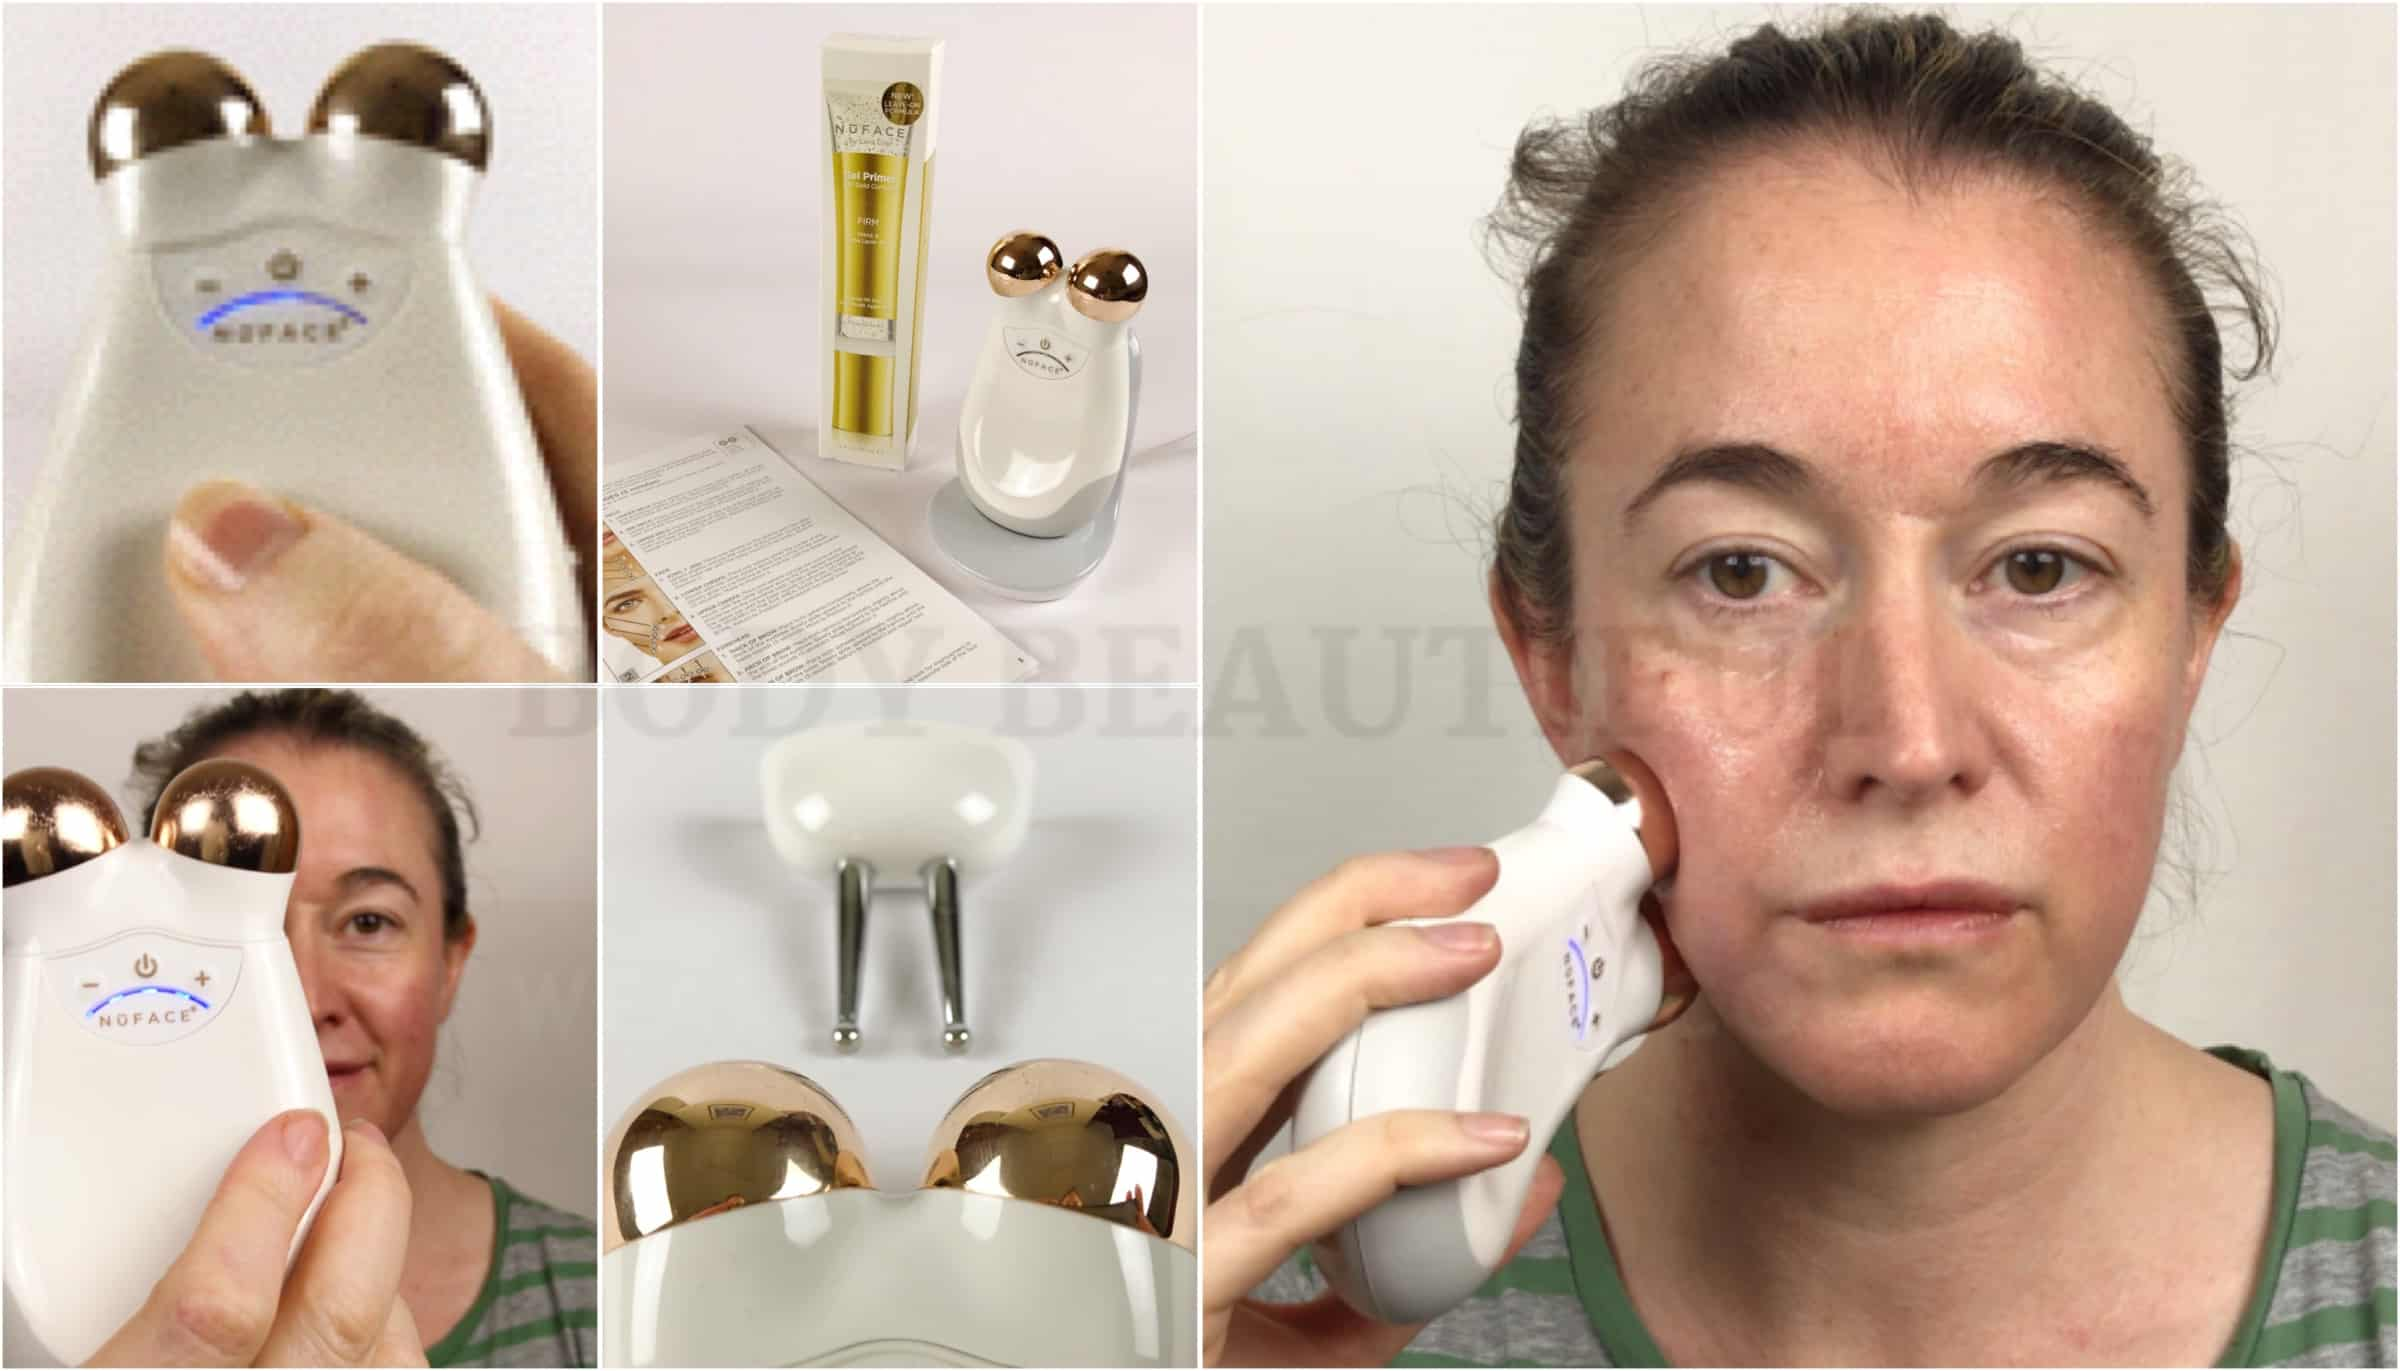 Nuface Before Vs After Tried Tested Review Wearebodybeautiful Com